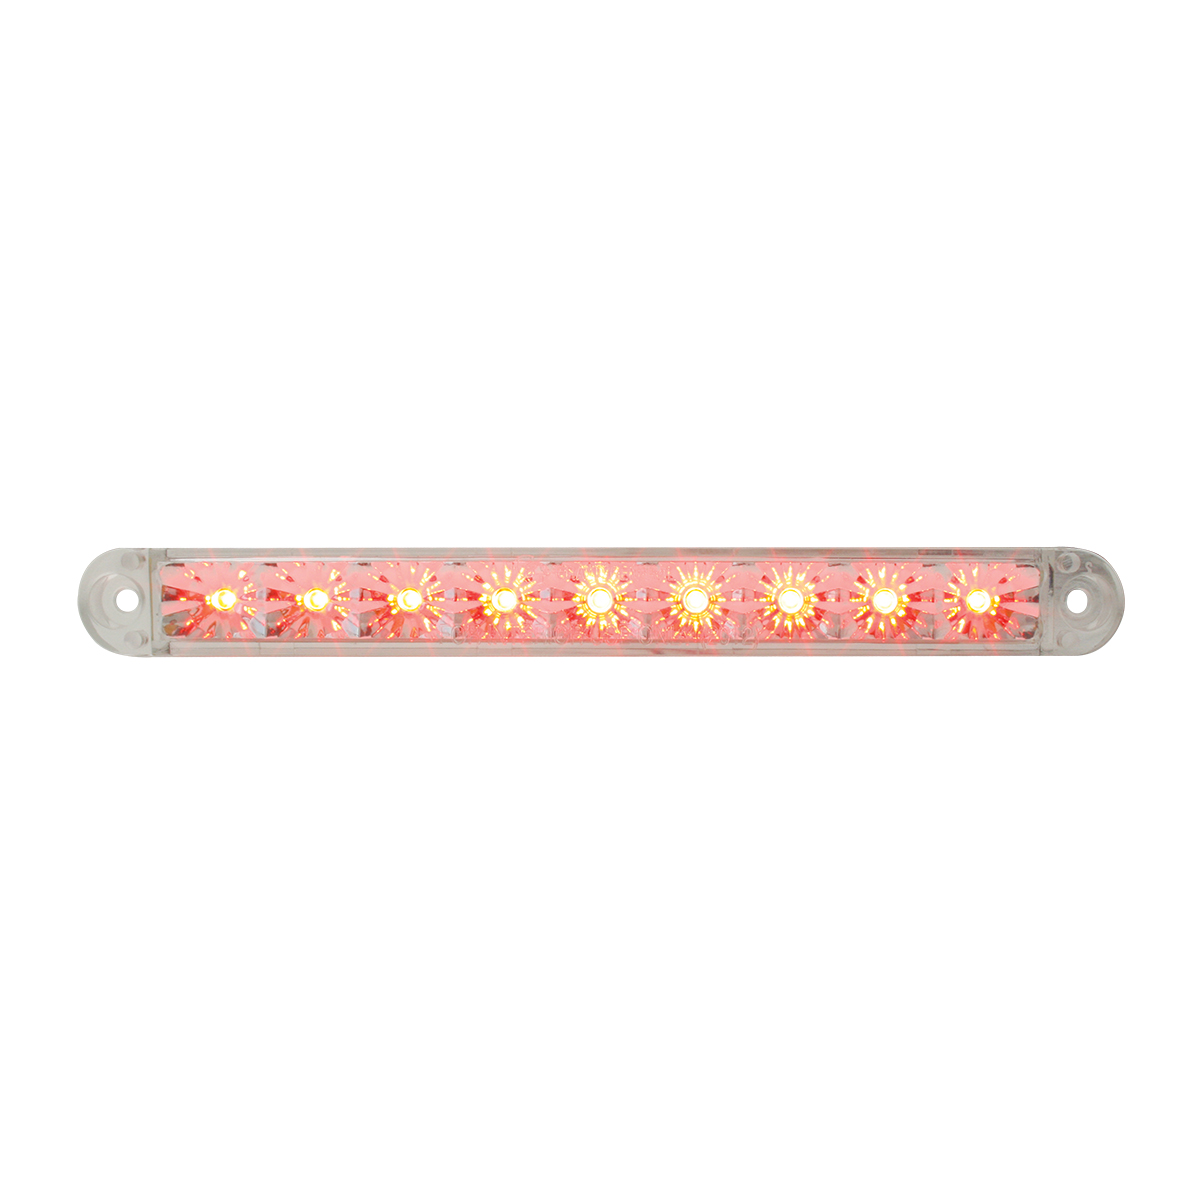 "76143 6.5"" Flush Mount LED Light Bar"